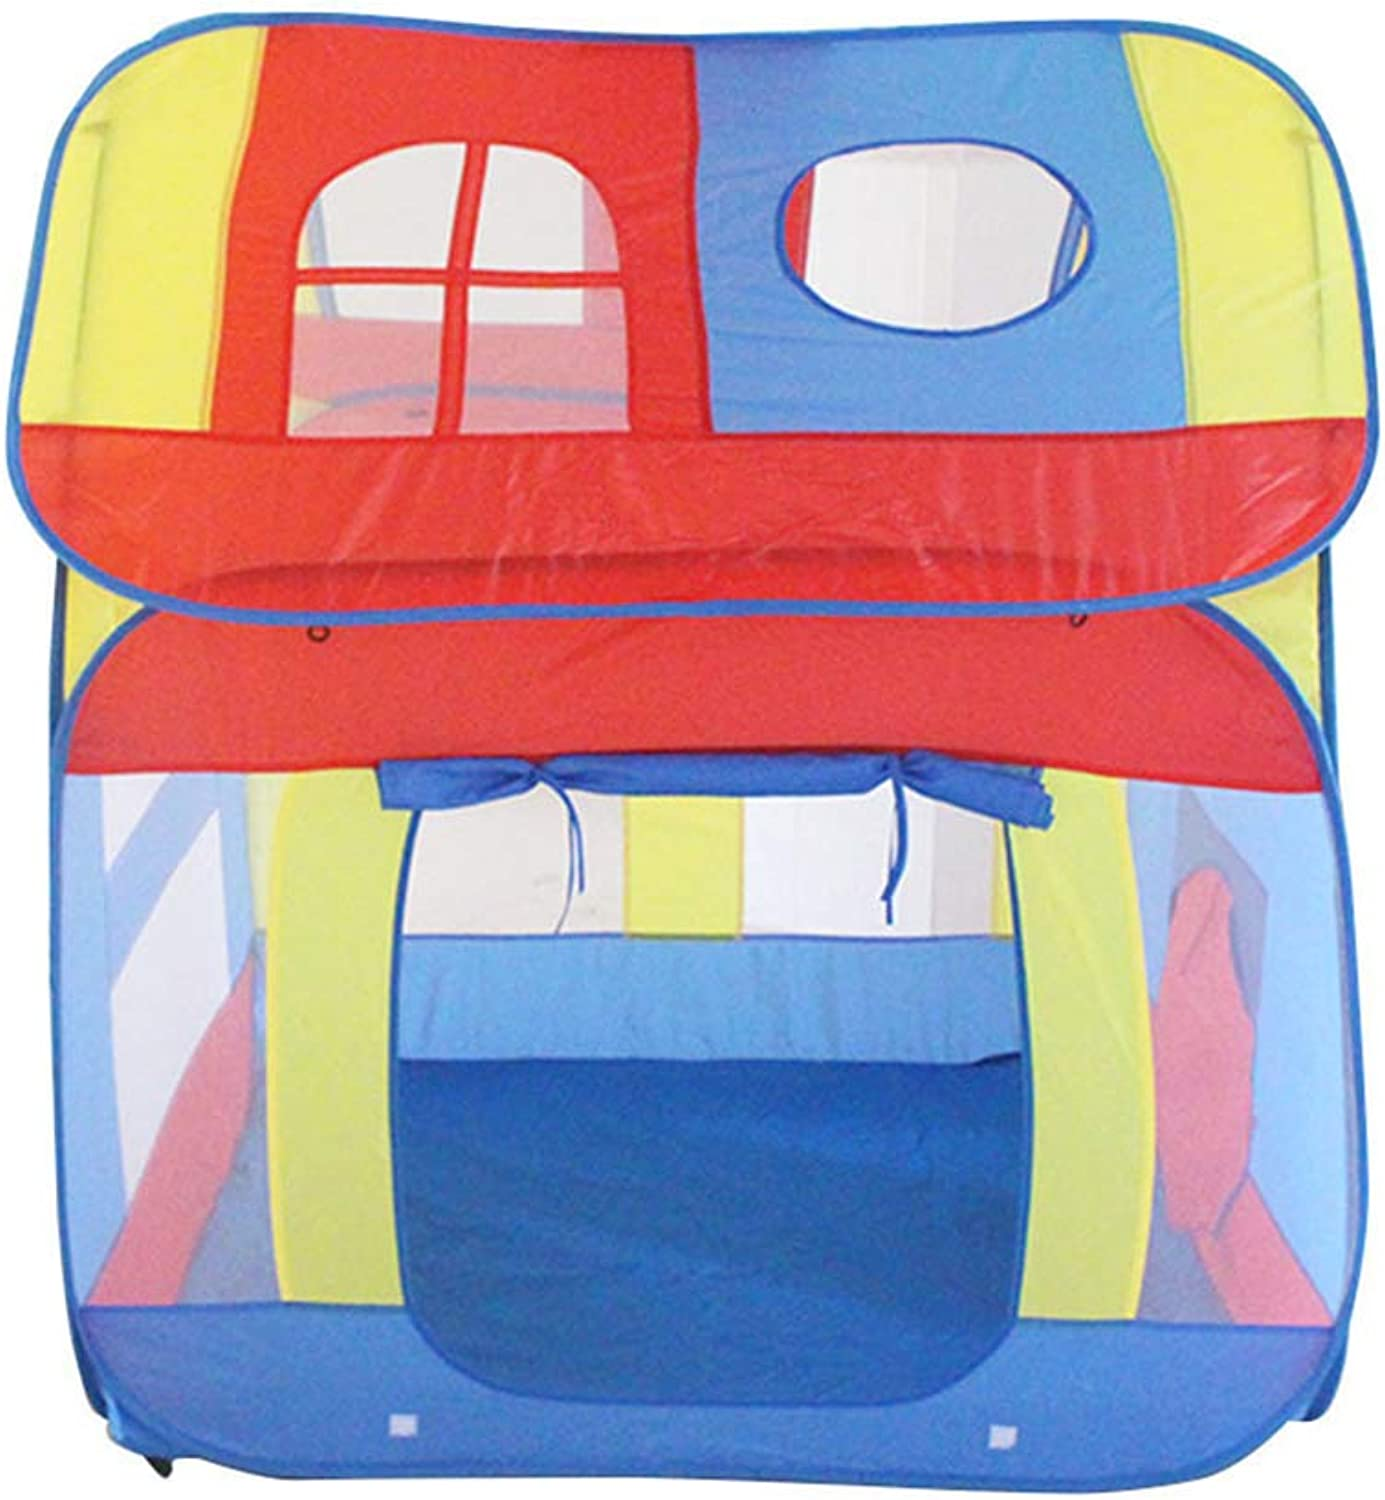 MagiDeal Multicolor Pop Up Playhouse for Kids Indoor Outdoor Use with Carrying Case